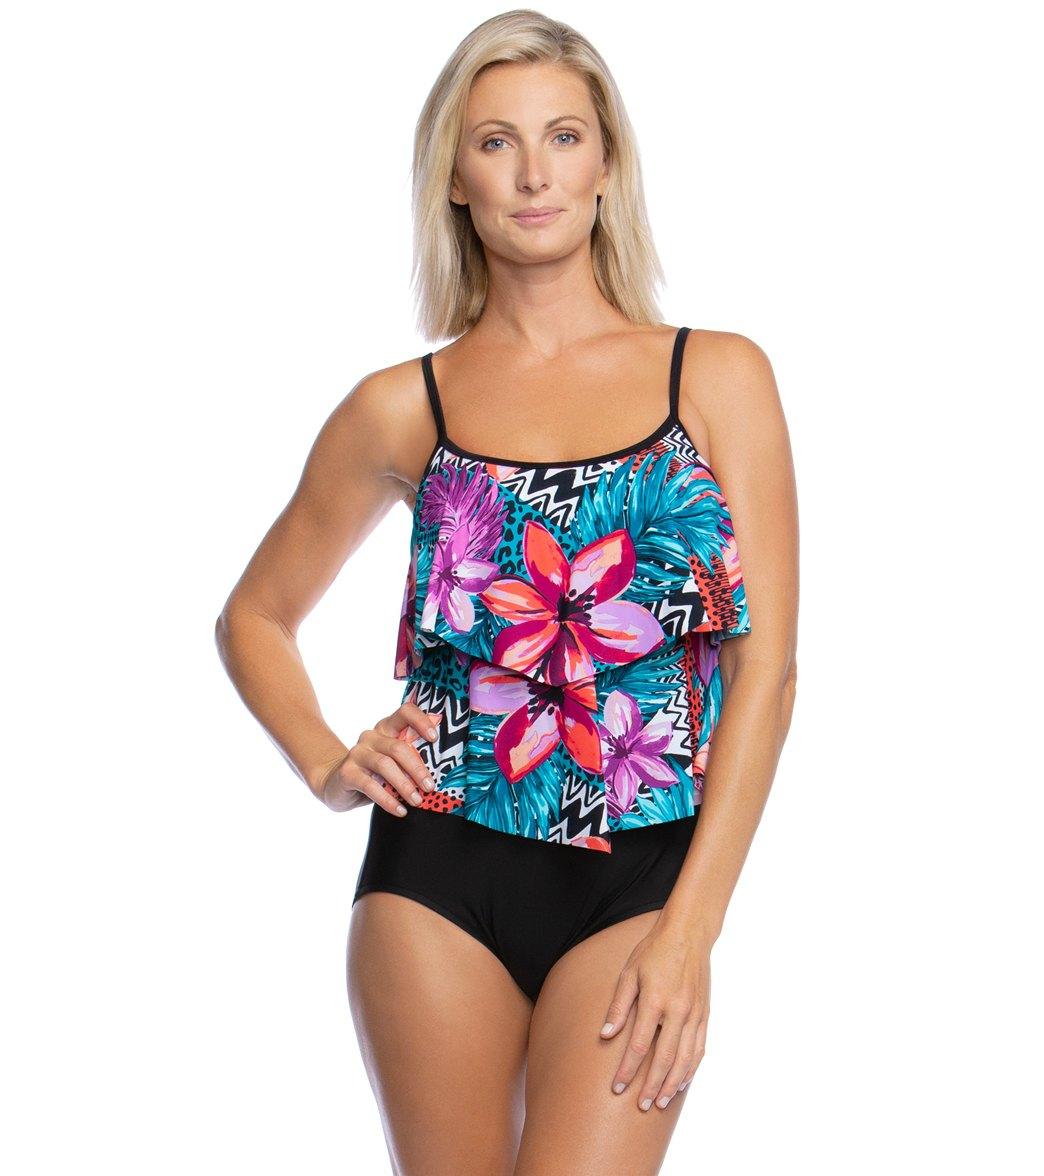 e251885380 Maxine Serengeti Stripe Double Tiered One Piece Swimsuit at SwimOutlet.com  - Free Shipping